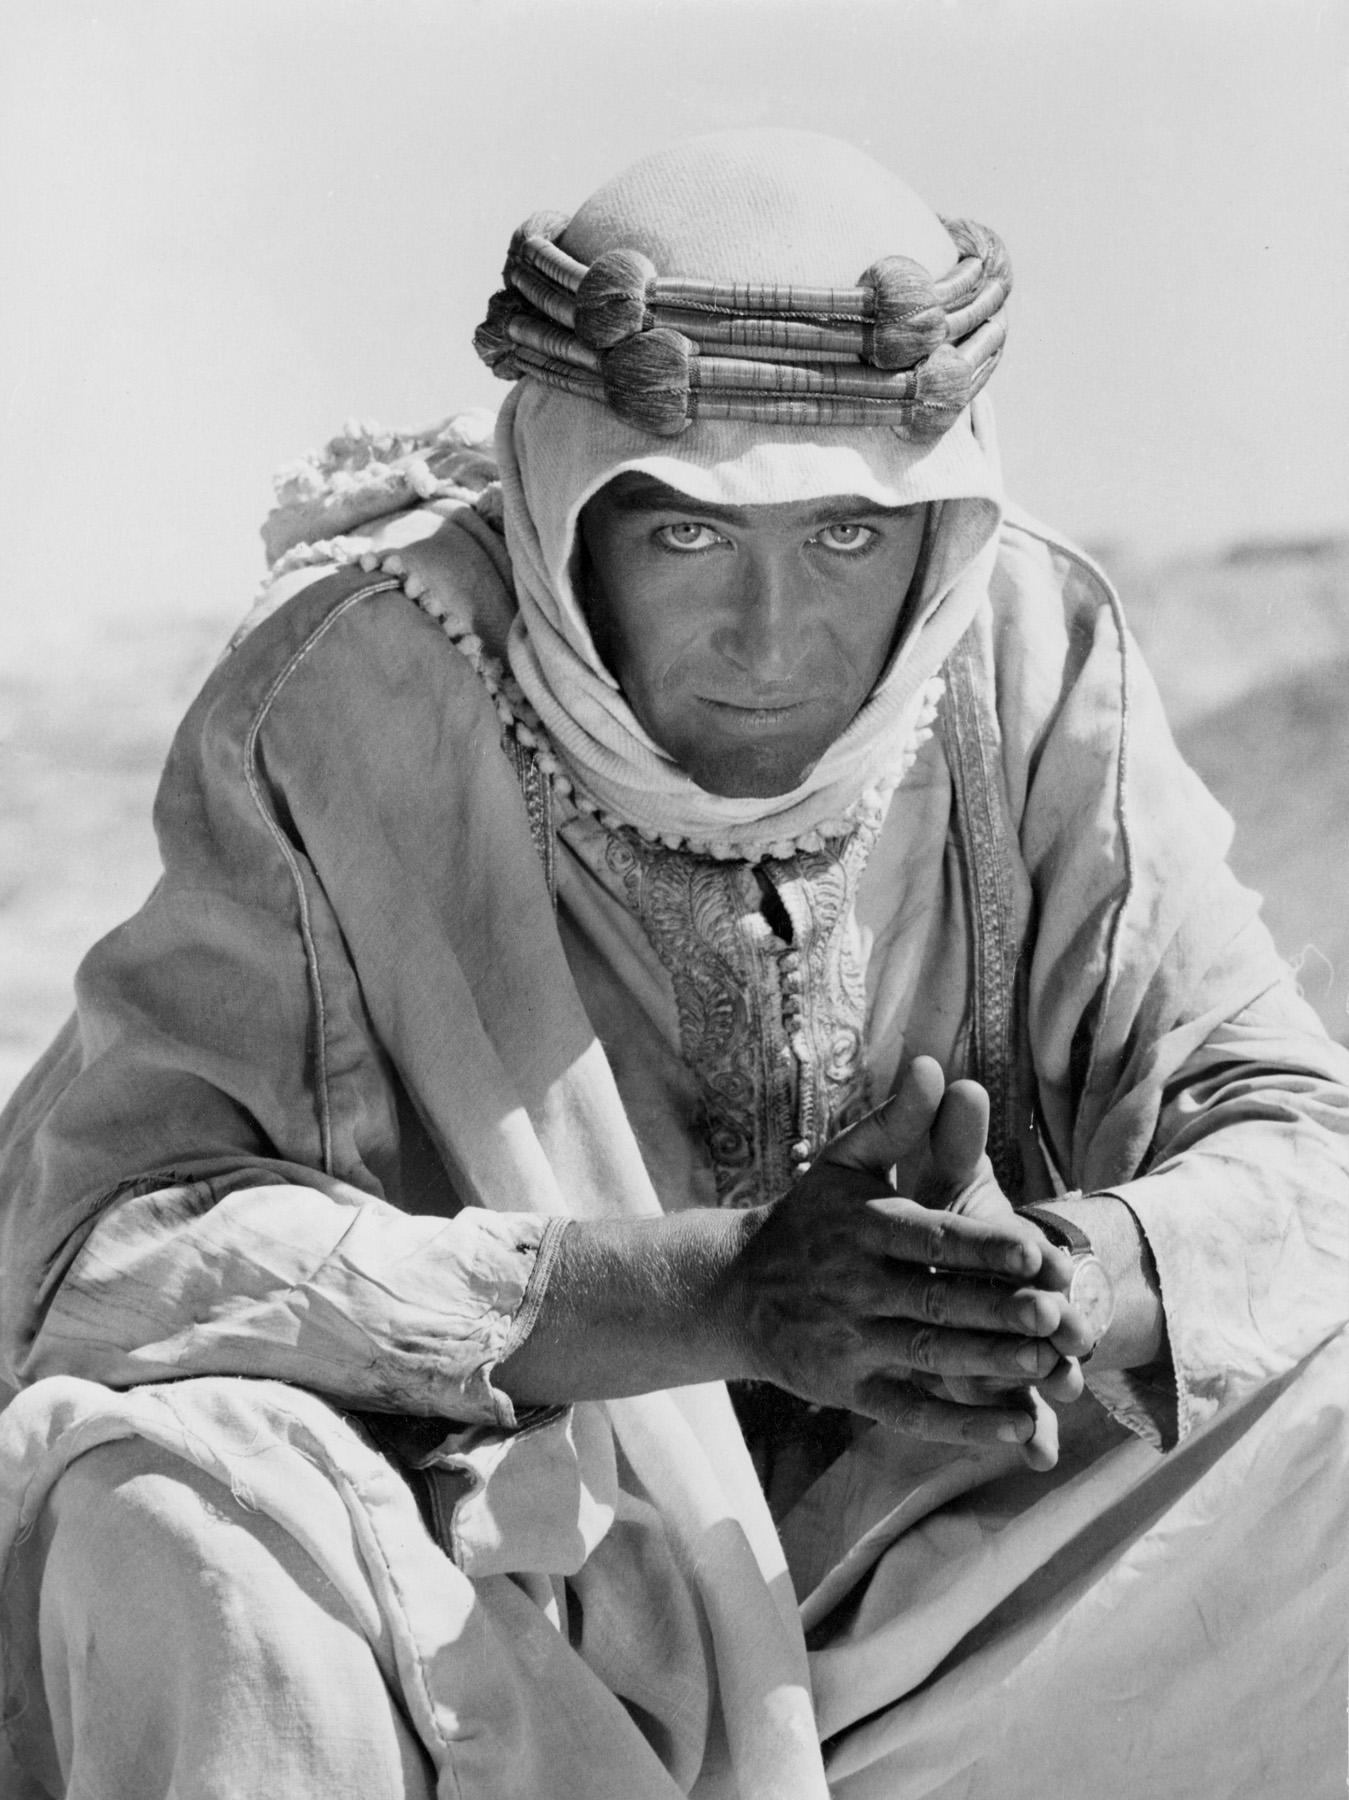 a report on lawrence of arabia a 1962 british american epic historical drama film by david lean It was directed by david lean and produced by sam spiegel through his british company horizon pictures, with the screenplay by robert bolt and michael wilson the film stars peter o'toole in the title role it is widely considered one of the greatest and most influential films in the history of cinema the dramatic score by maurice jarre and the.